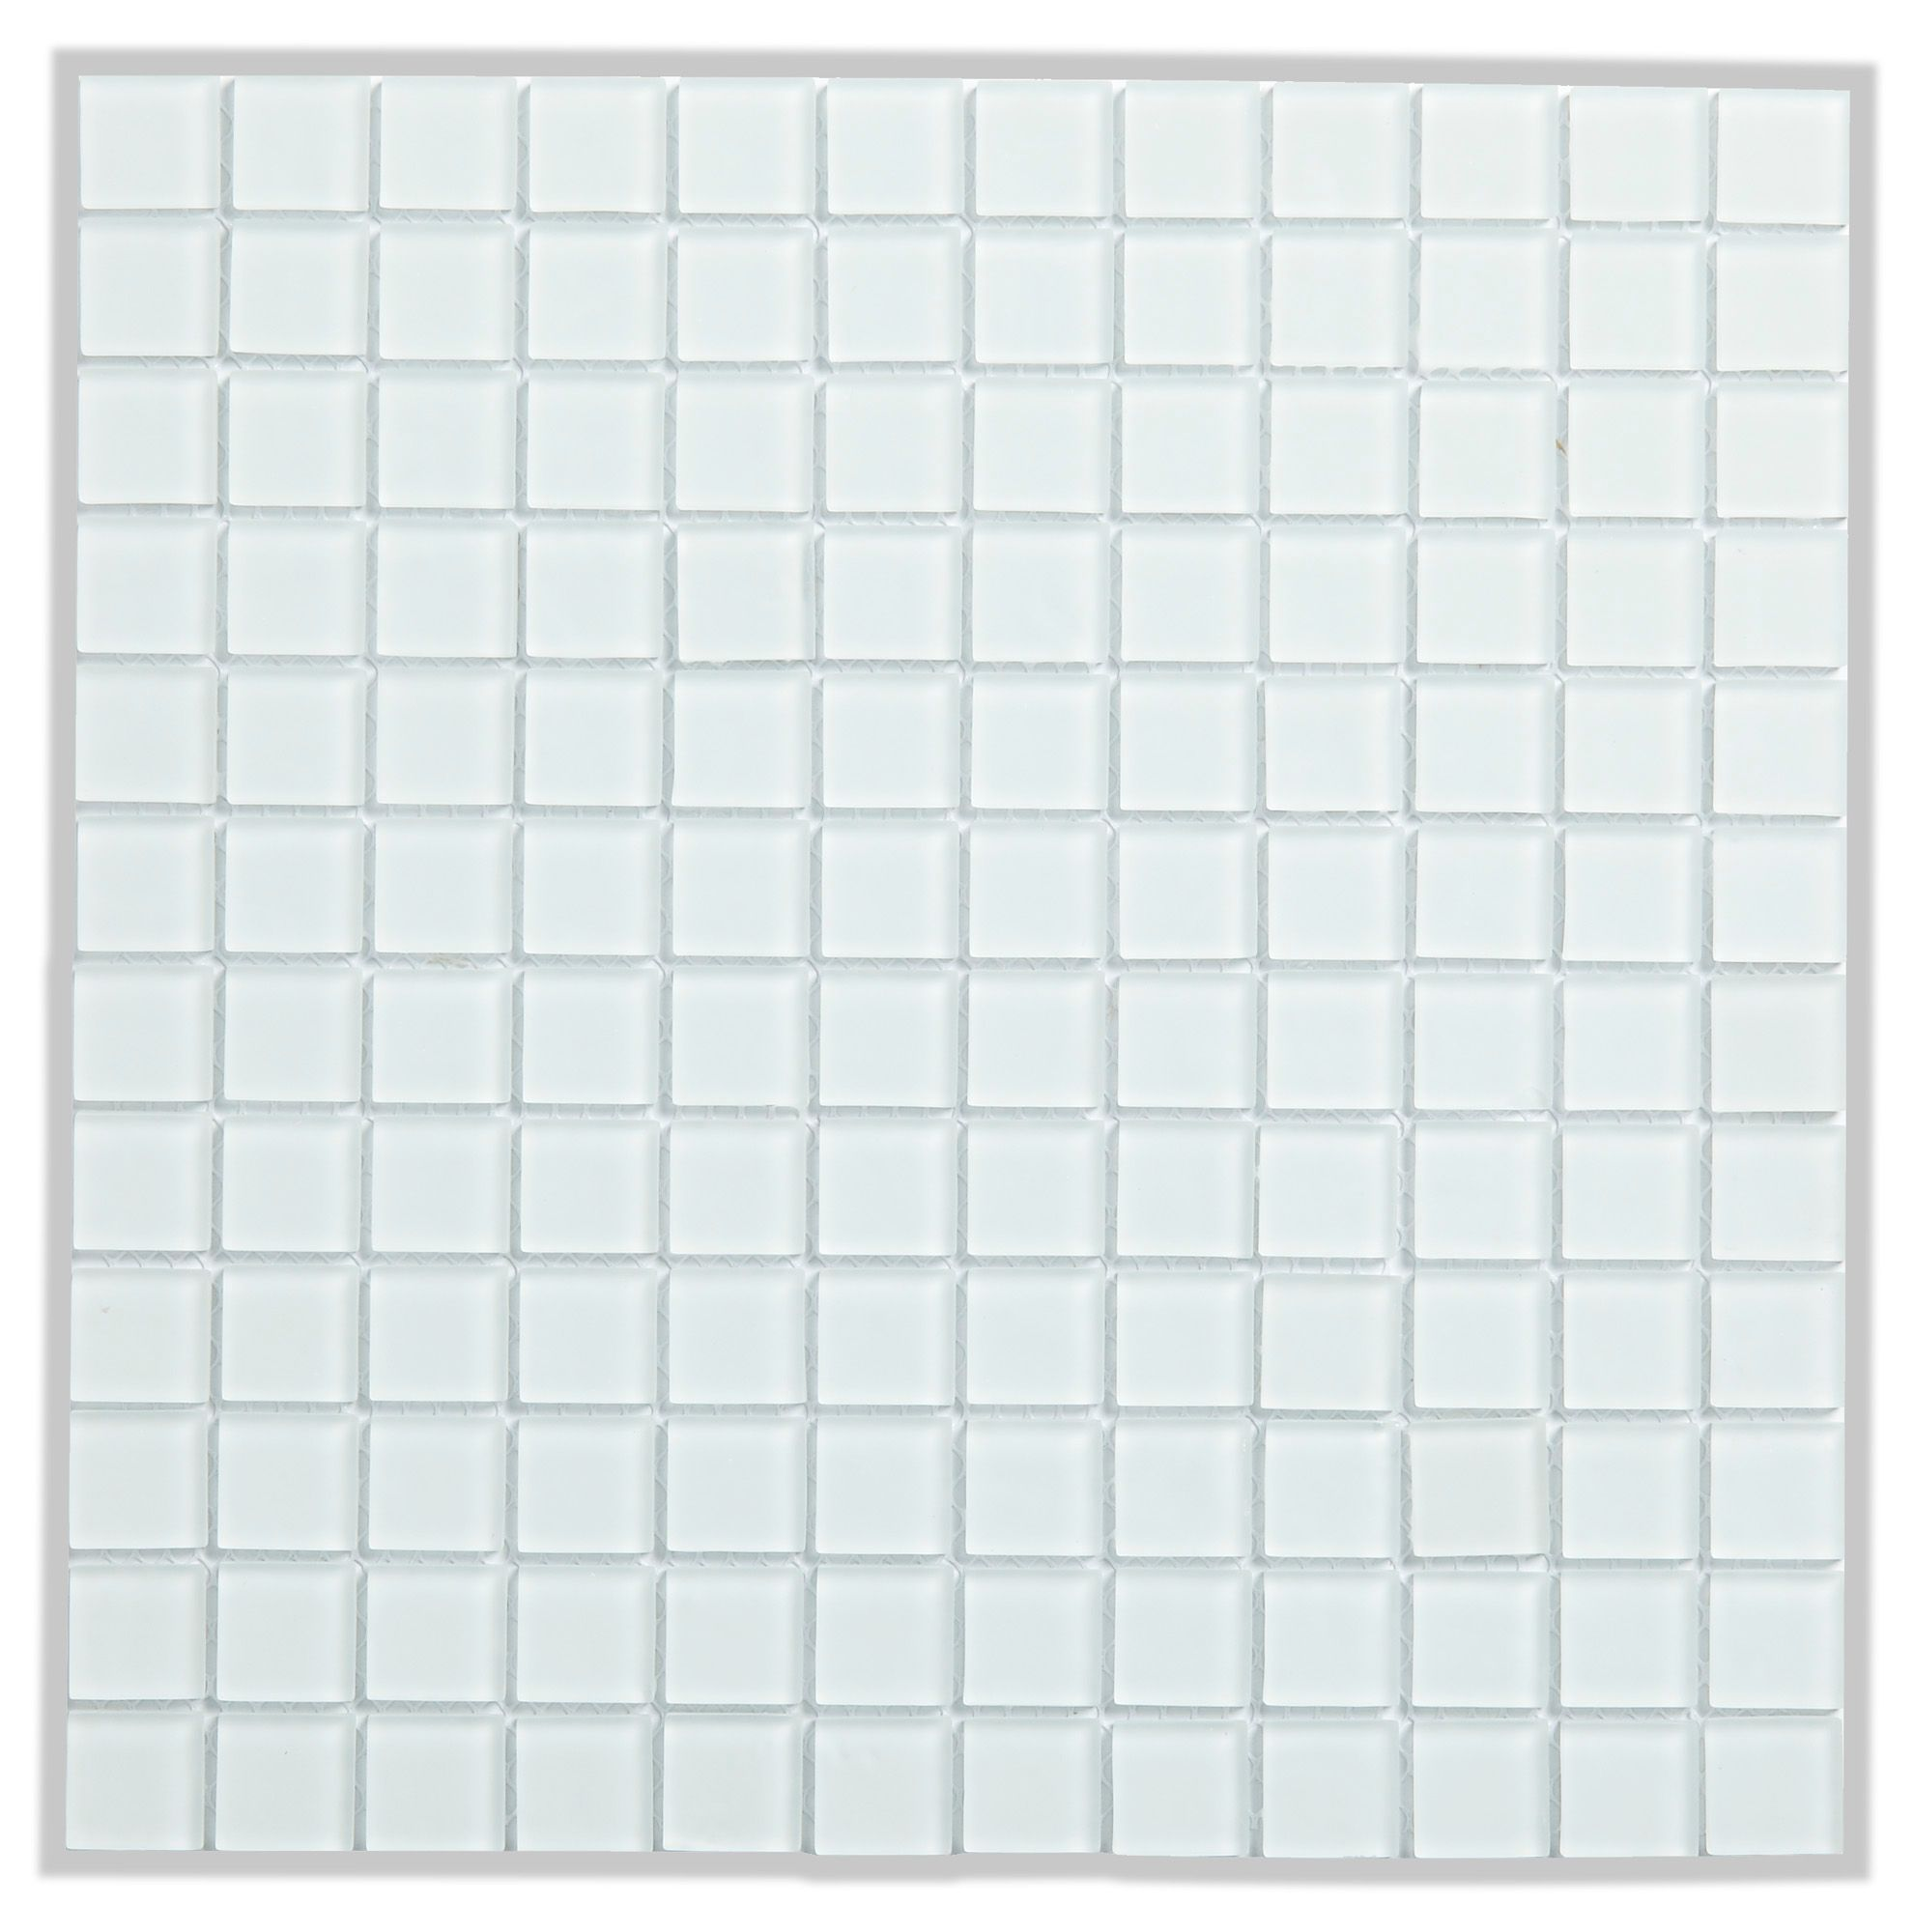 Green Glass Marble Mosaic Tile L 300mm W 300mm: Frosted Glass White Glass Mosaic Tile, (L)300mm (W)300mm